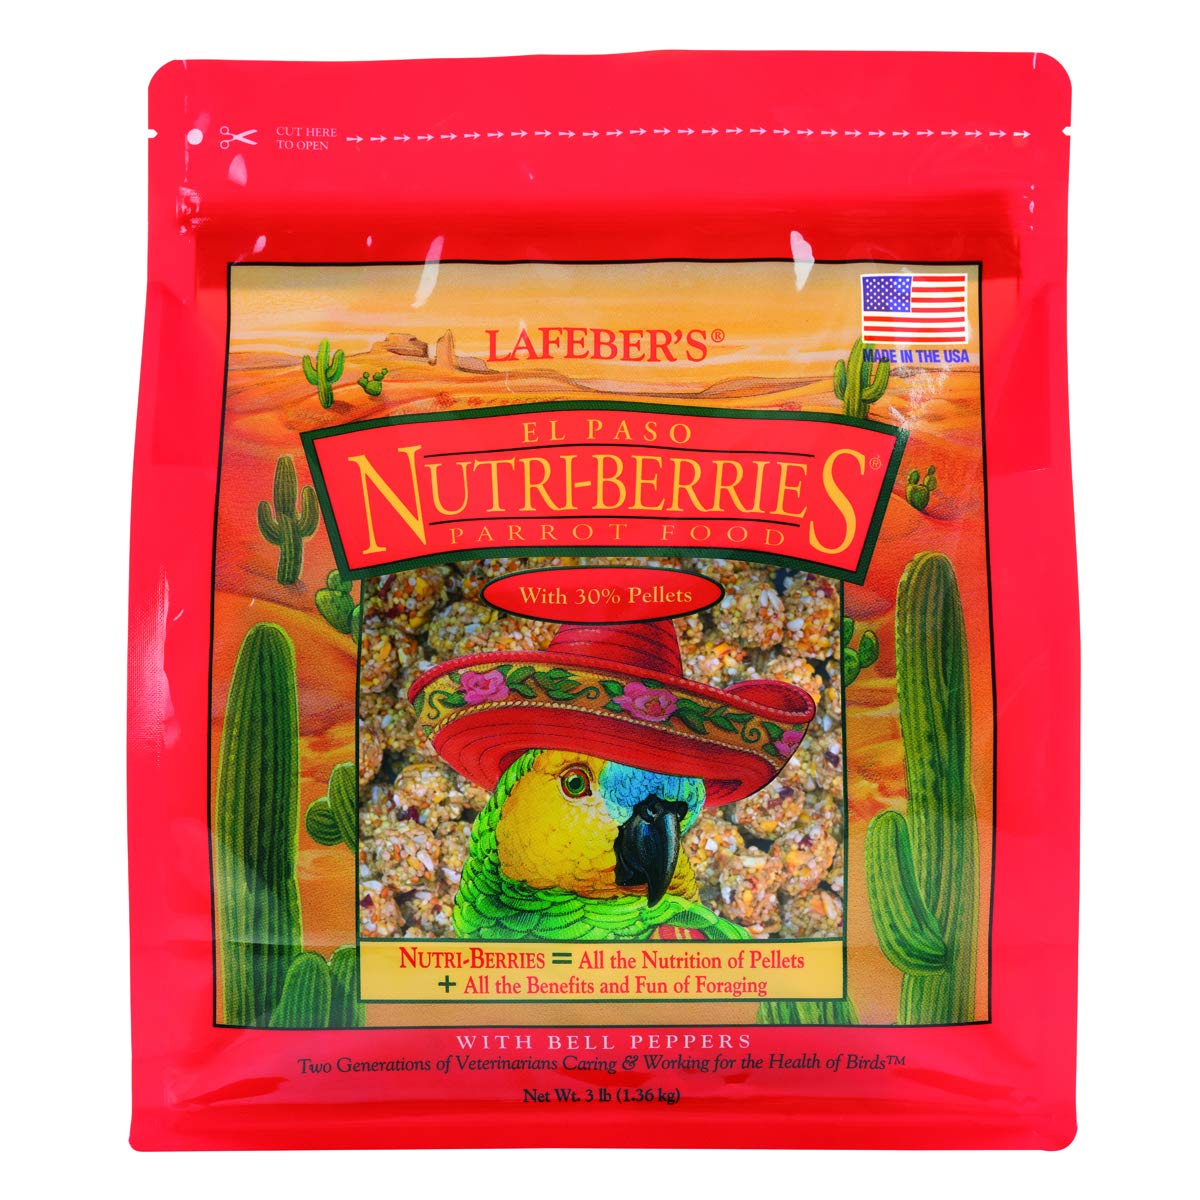 LAFEBER'S El Paso Nutri-Berries Pet Bird Food, Made with Non-GMO and Human-Grade Ingredients, for Parrots, 3 lbs by LAFEBER'S